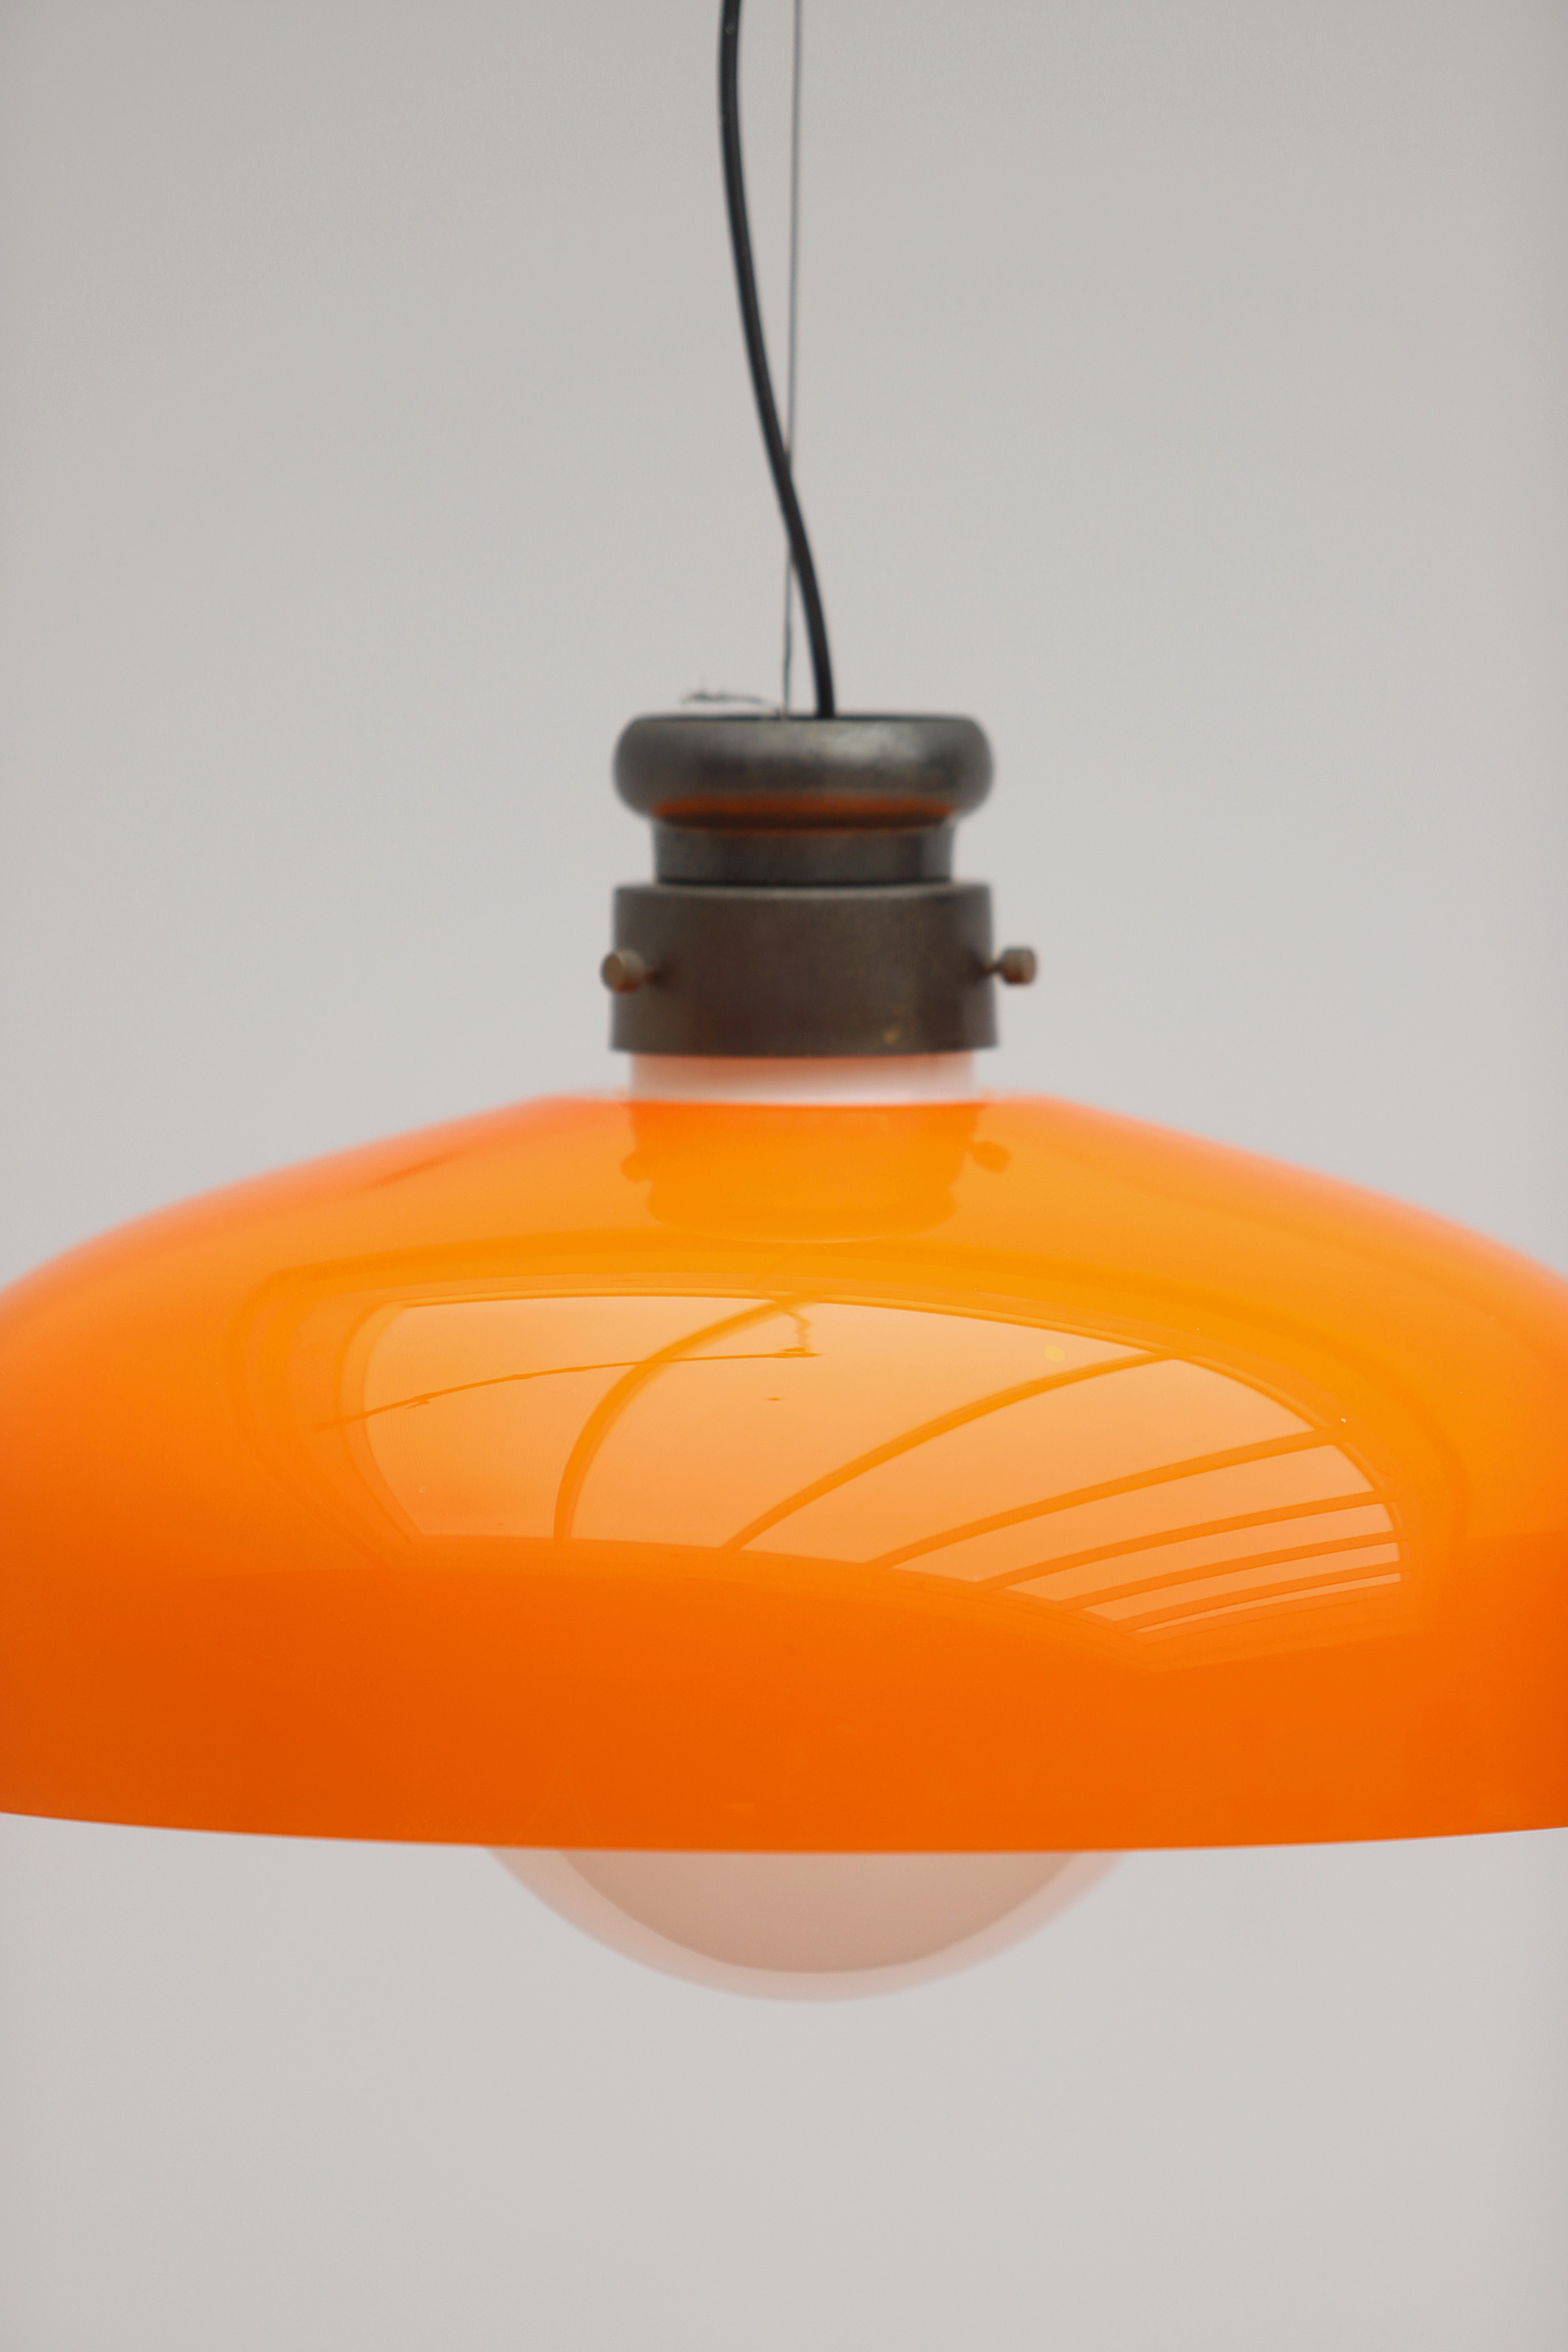 Pendant Lamp by Alessandro Pianon for Vistosiimage 3